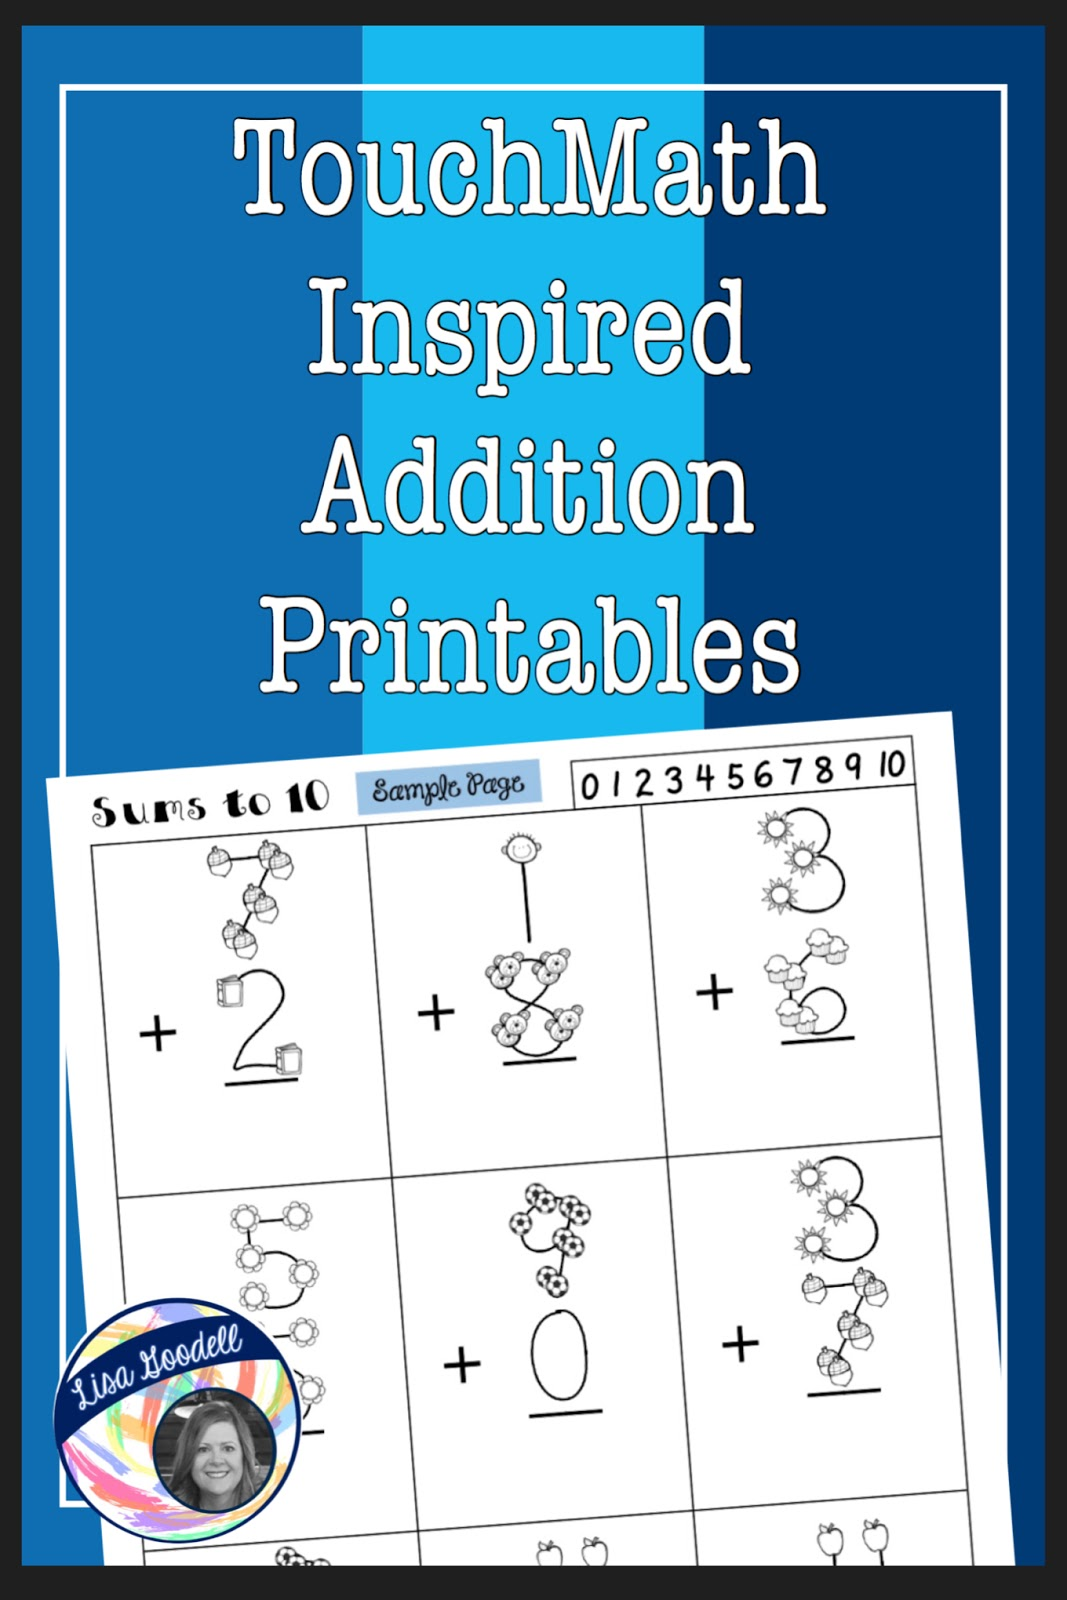 Lisa Goodell : TouchMath Inspired Printables - Supplement worksheets